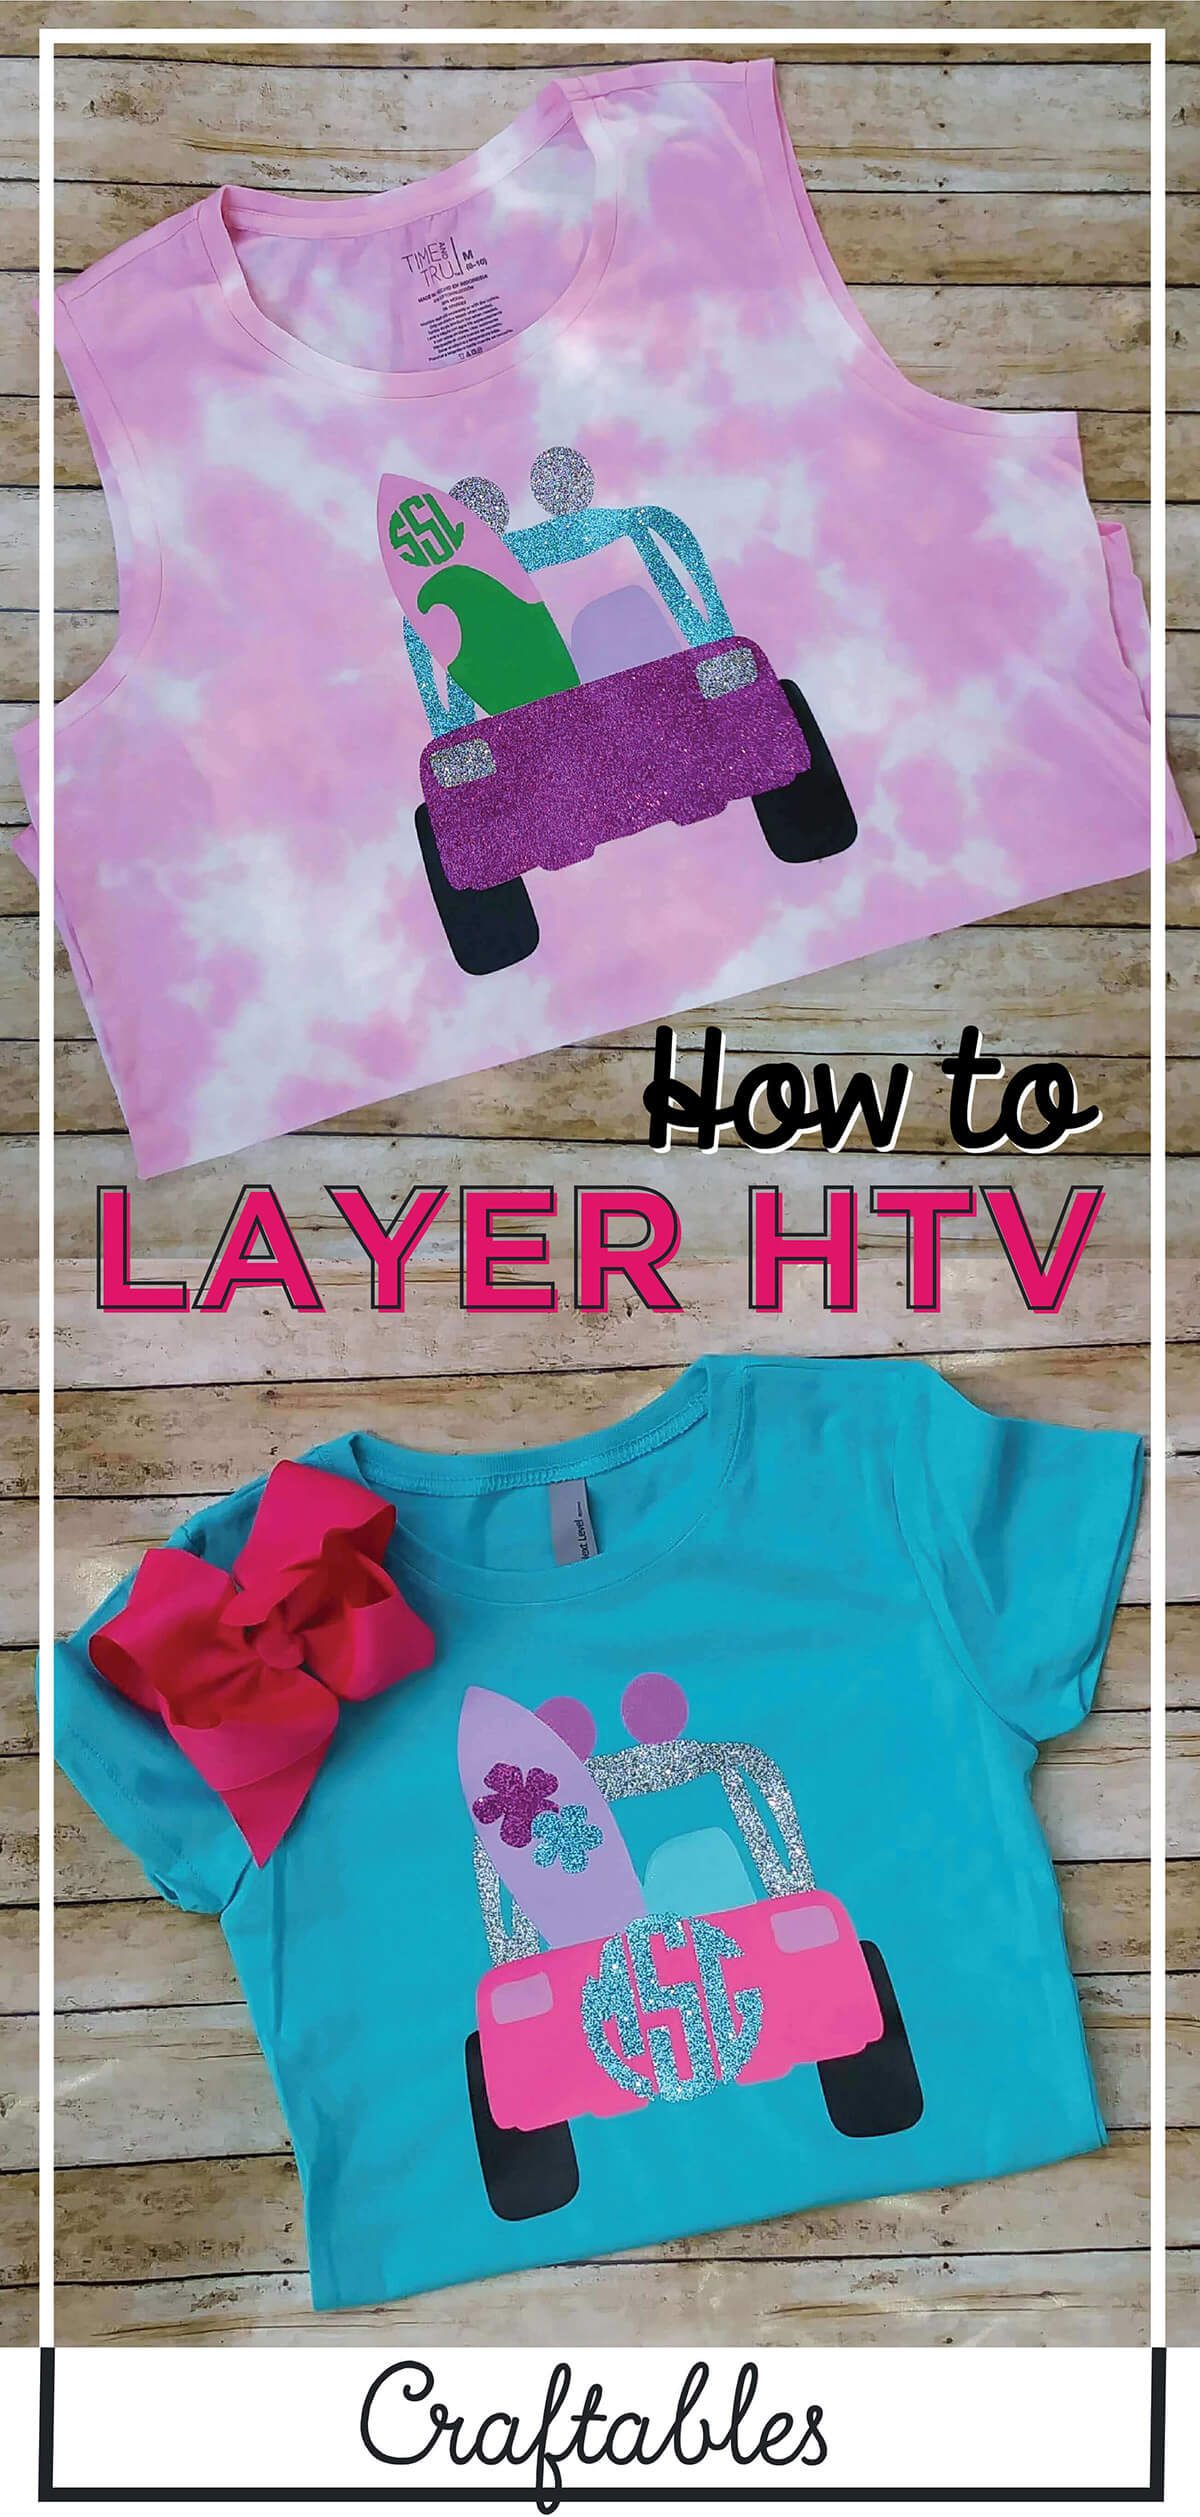 craftables how to layer htv